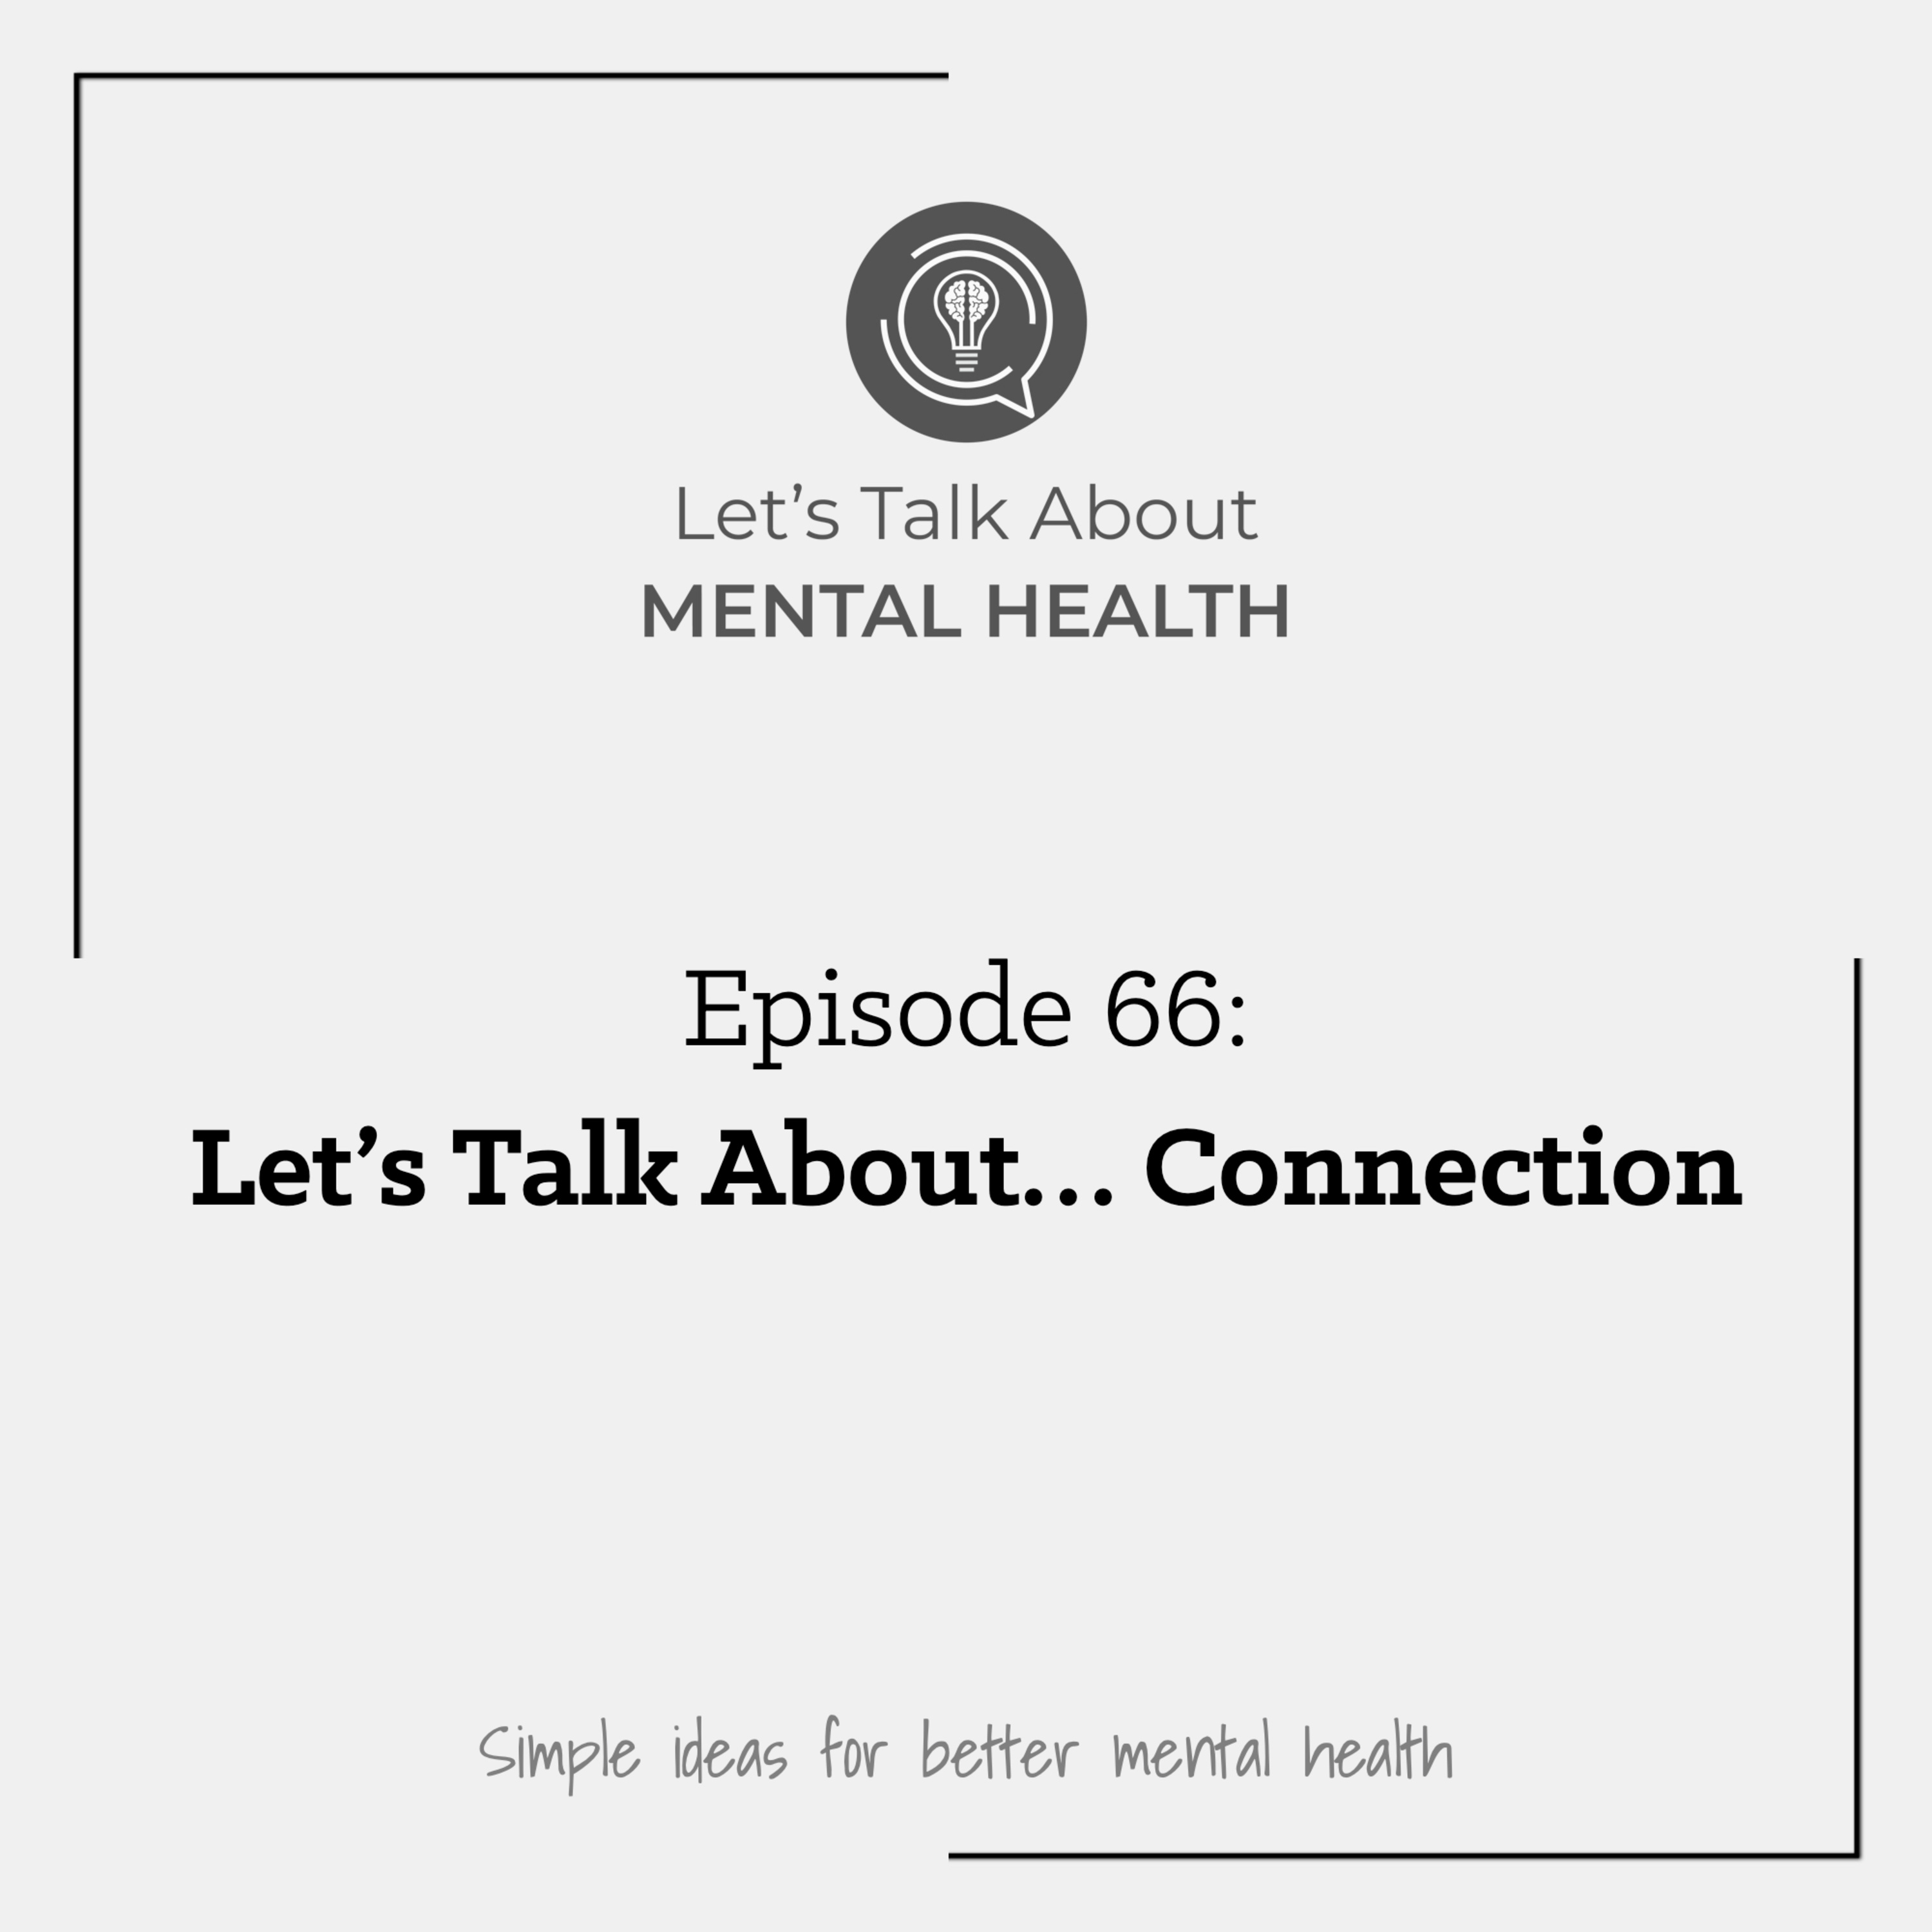 Let's Talk About Mental Health - Let's Talk About... Connection